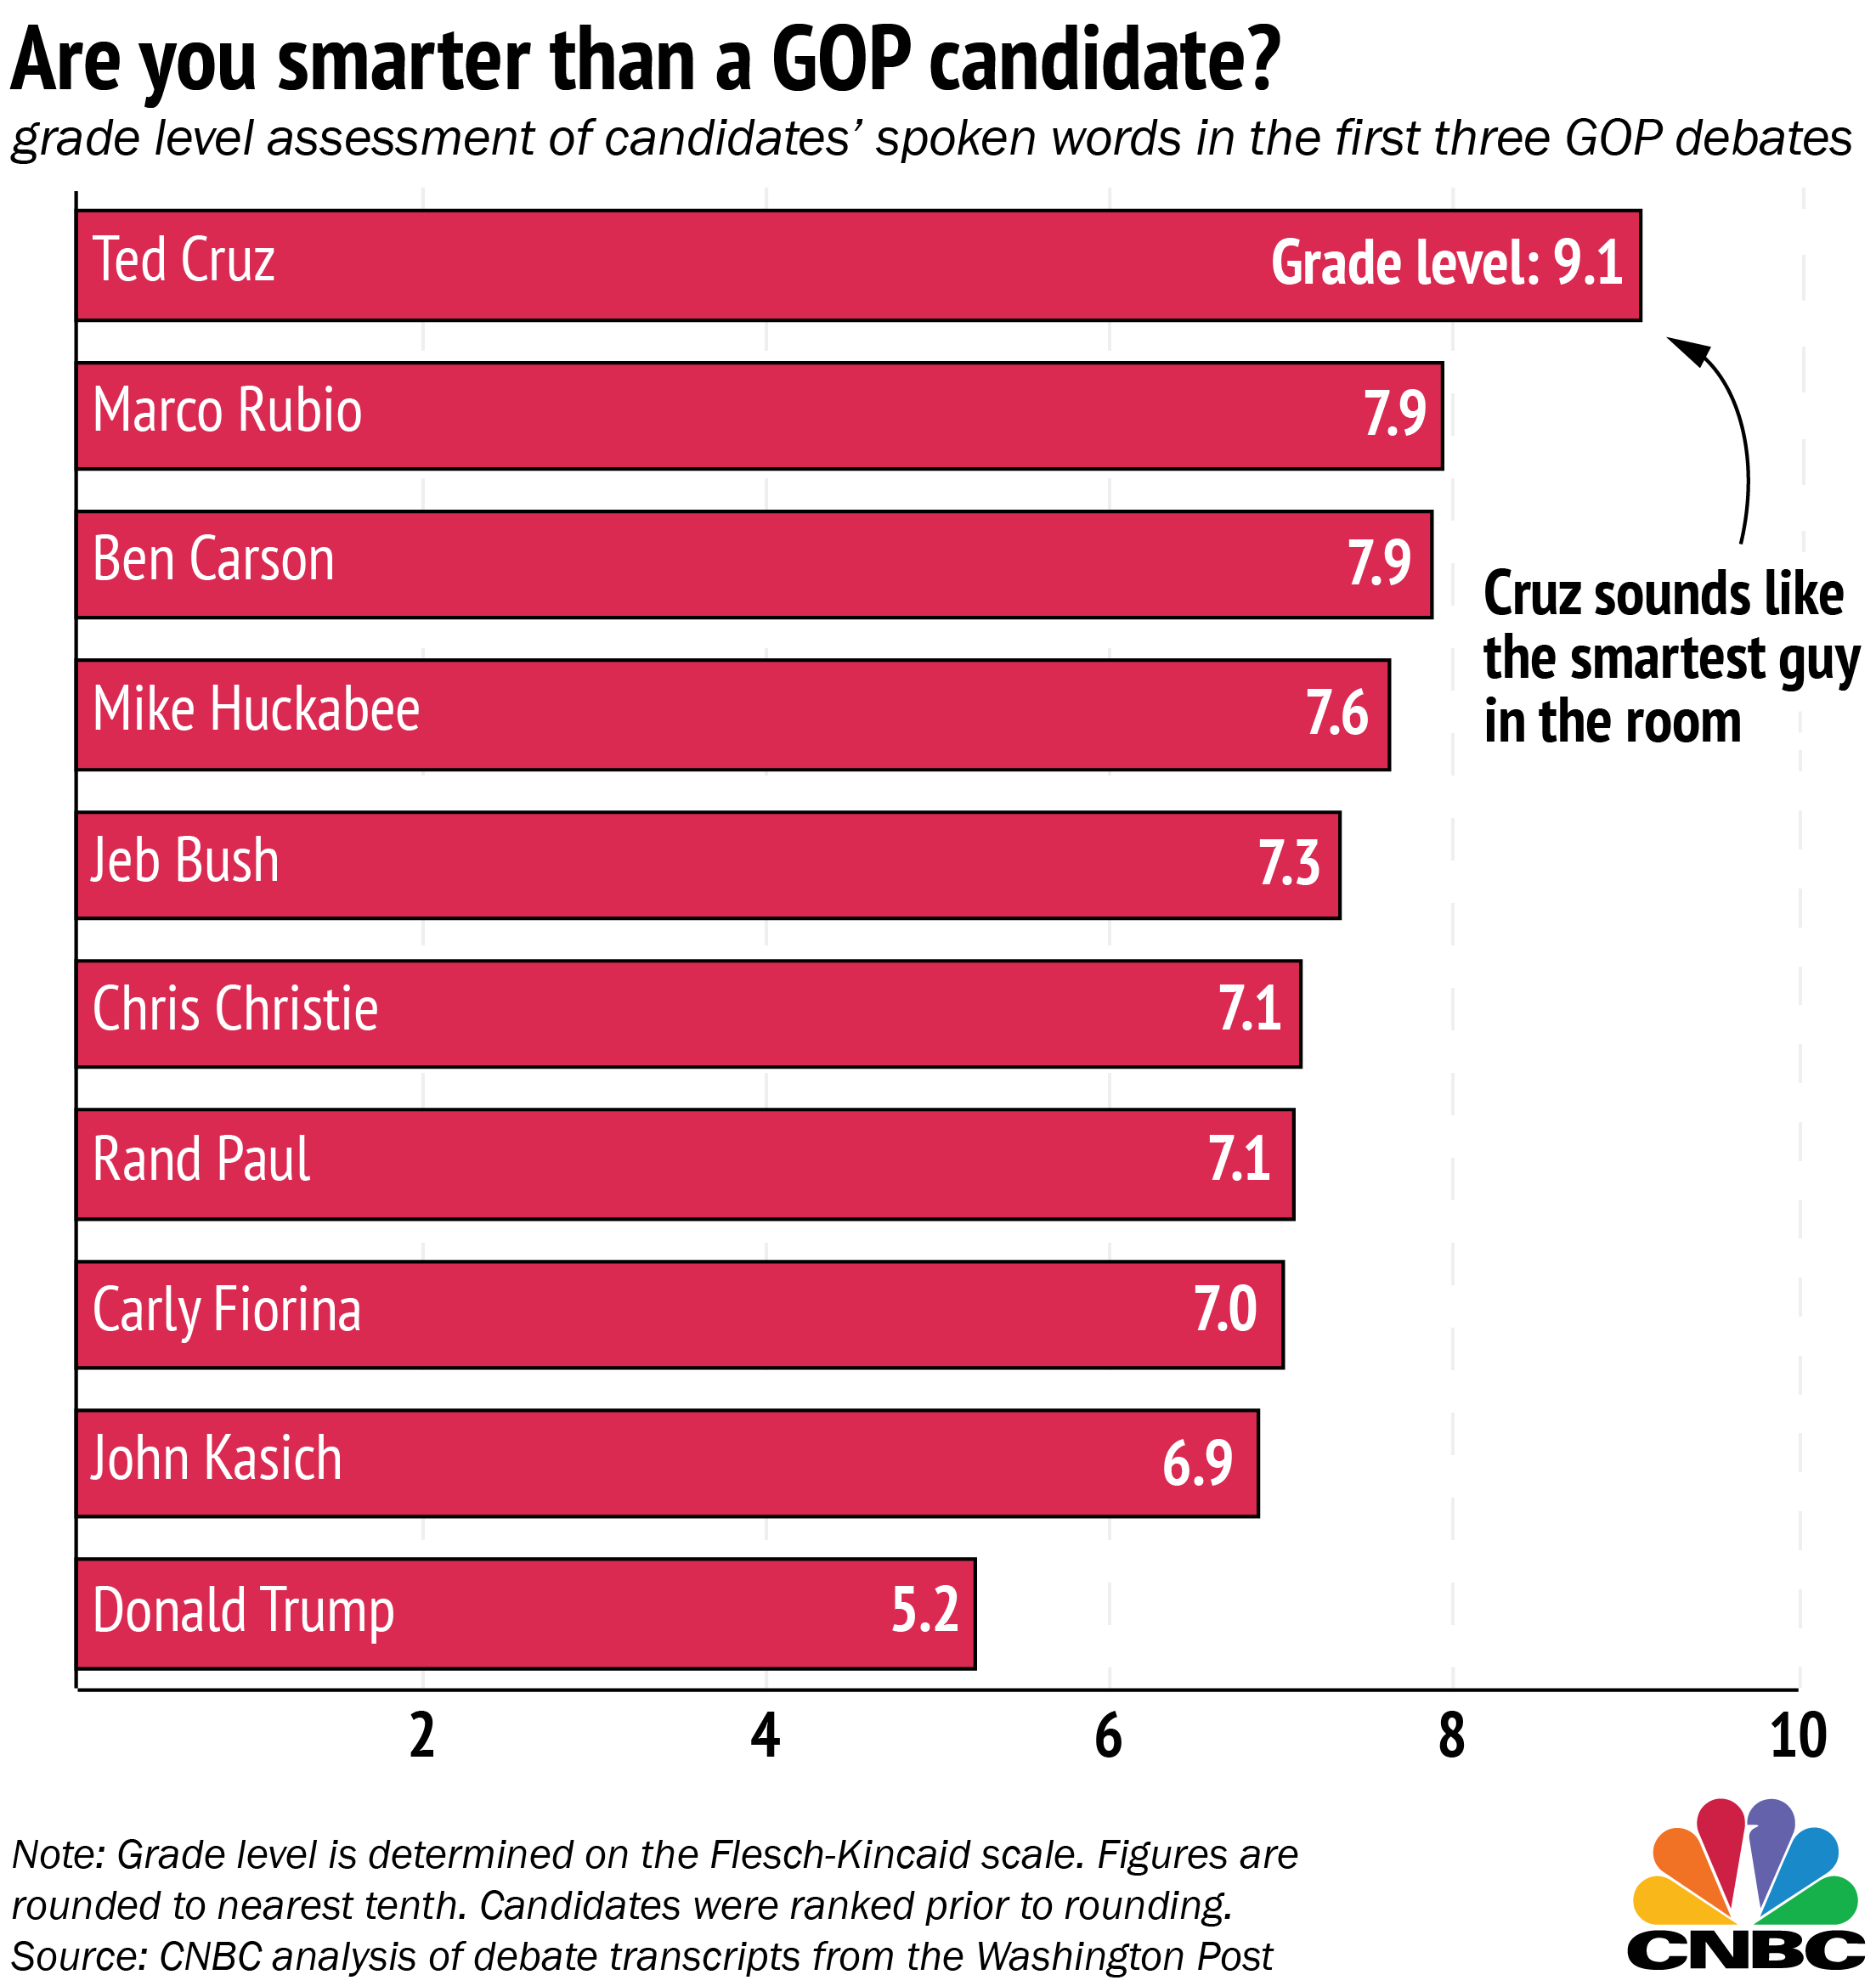 CNBC Rates Grade Level of GOP Candidates' Speech Patterns